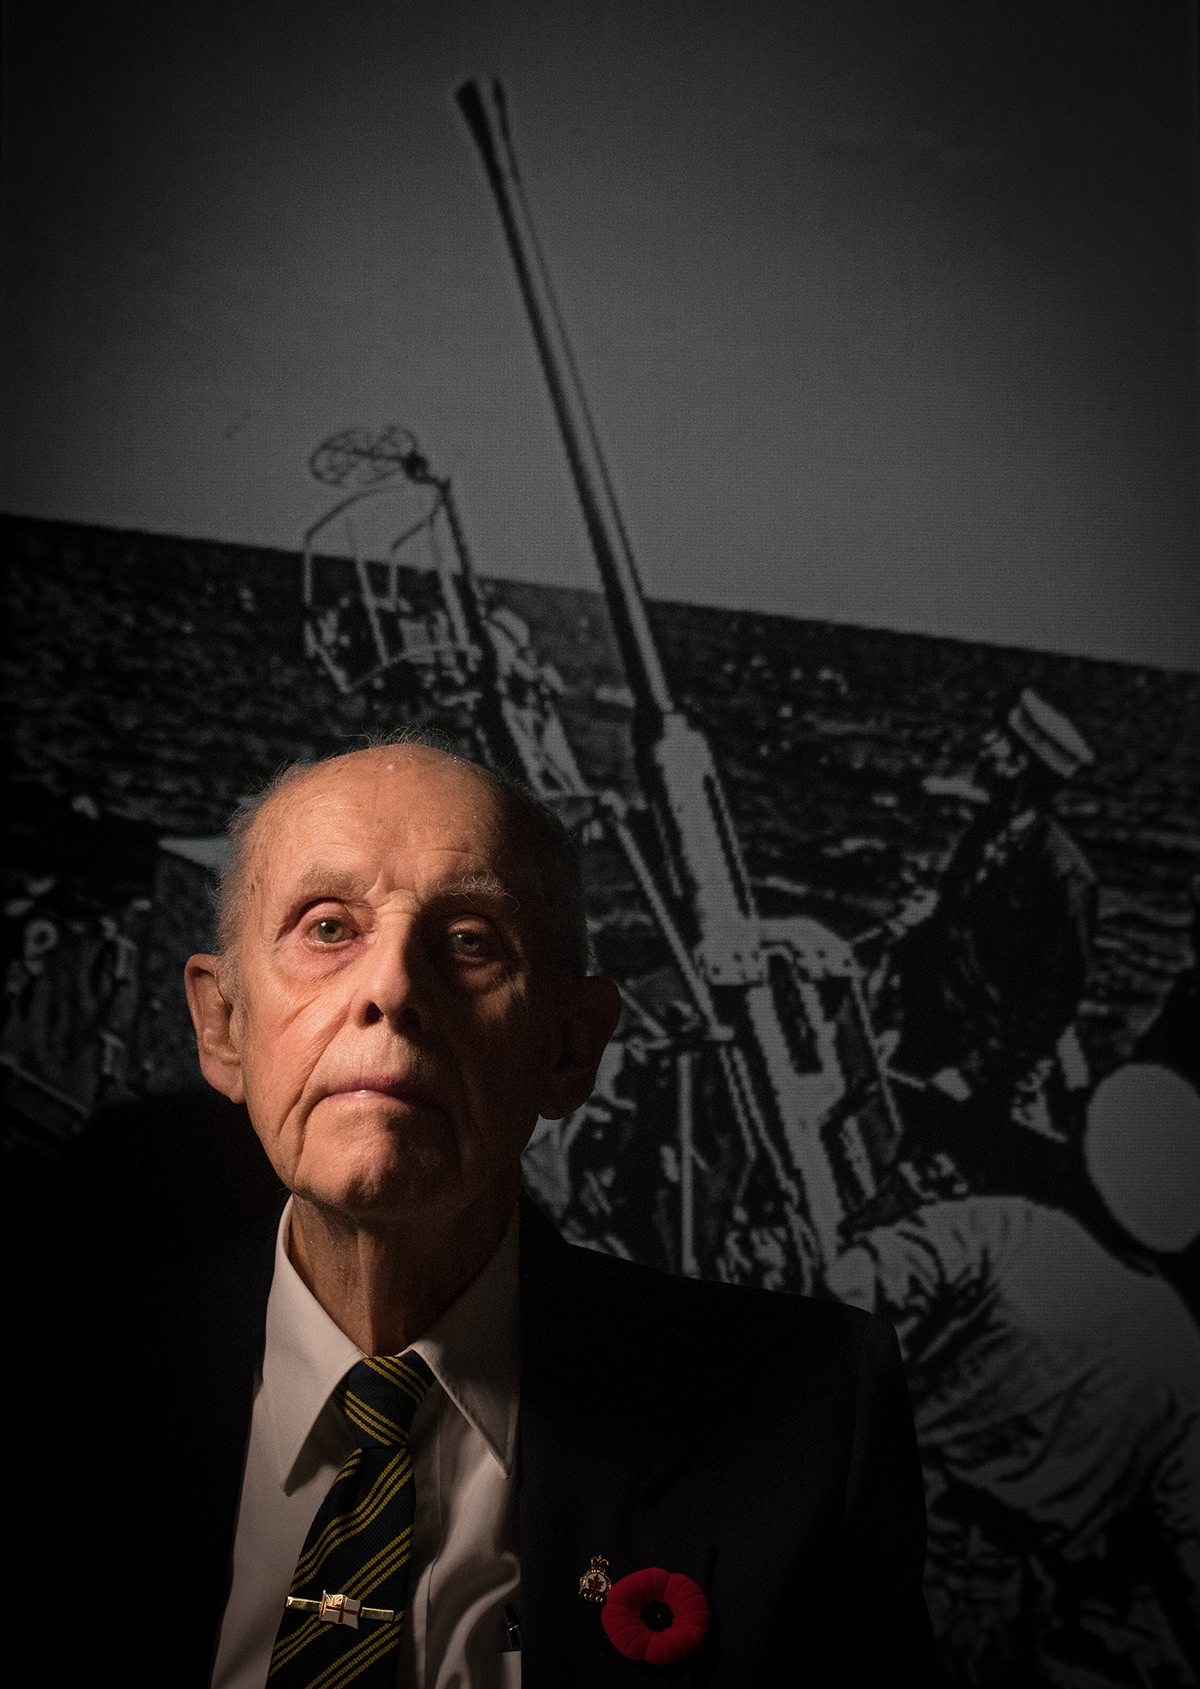 Jim Lister is photographed in front of an image of himself taken during the war times.